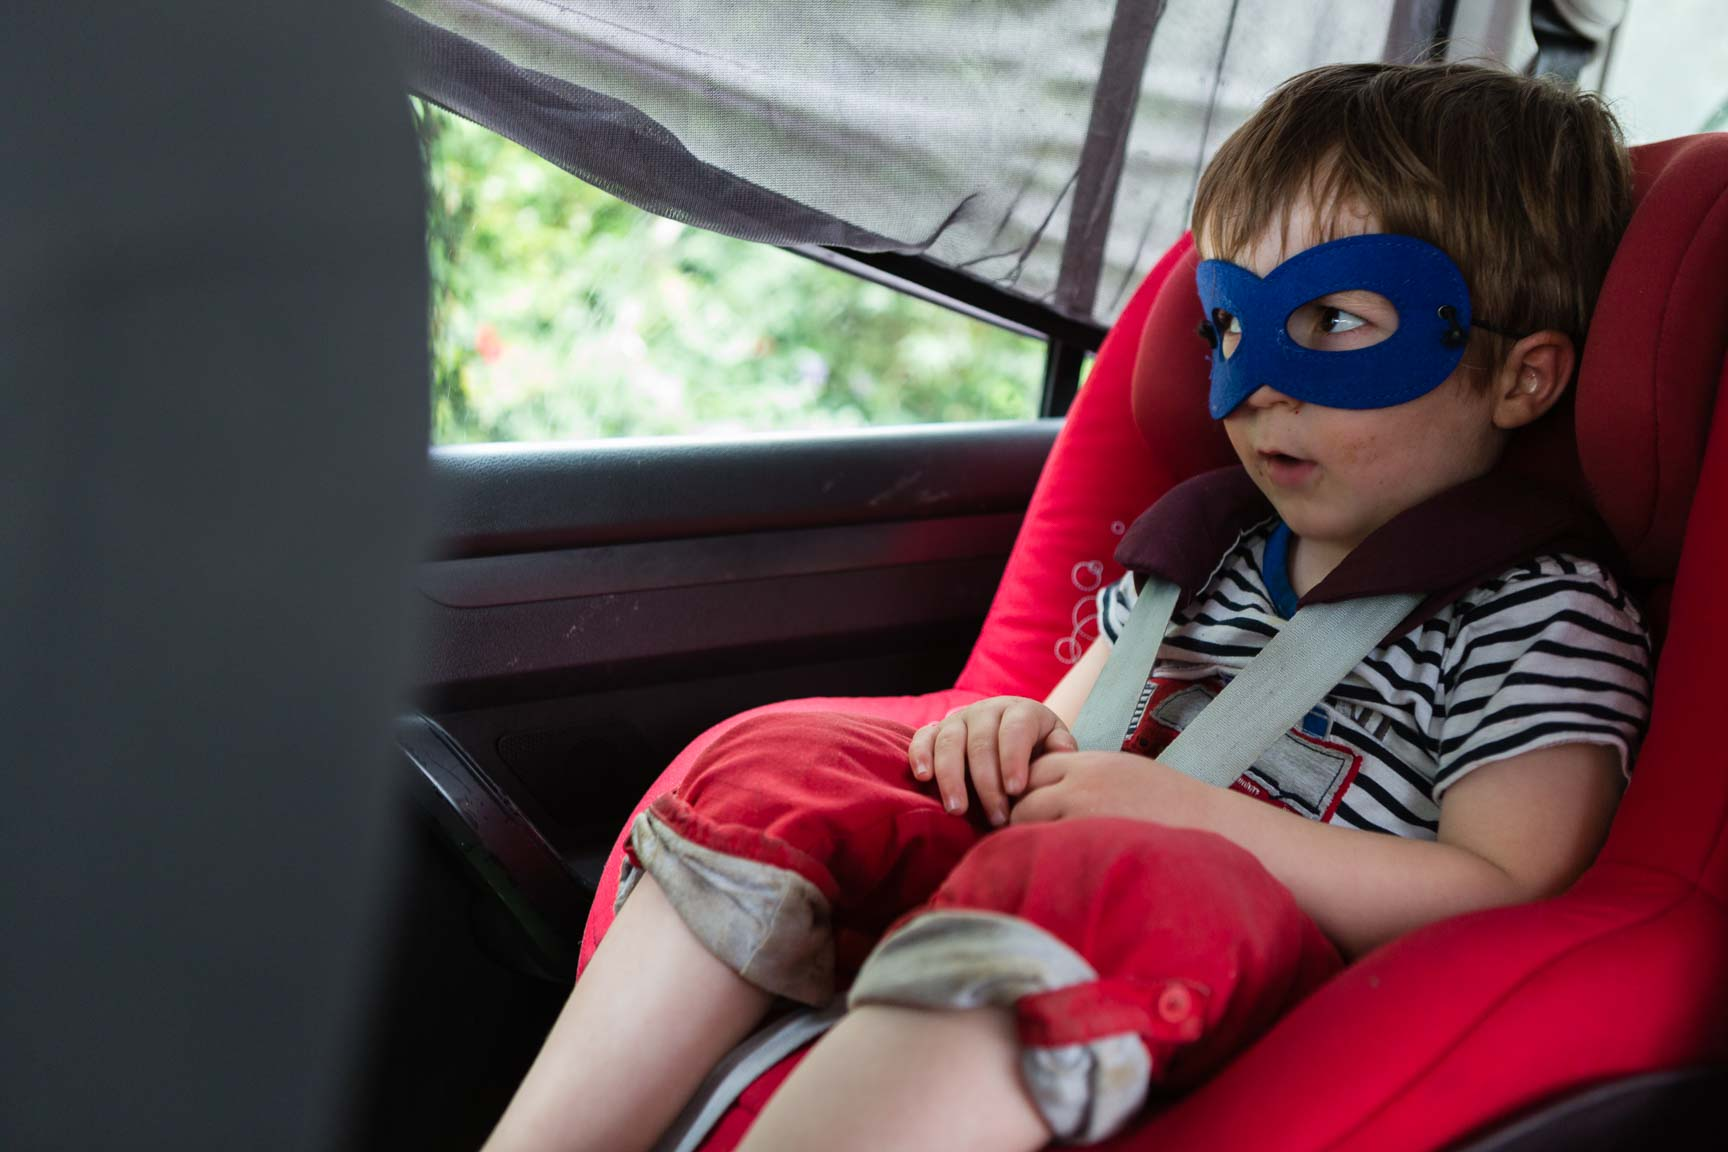 Little boy in car seat with superhero mask